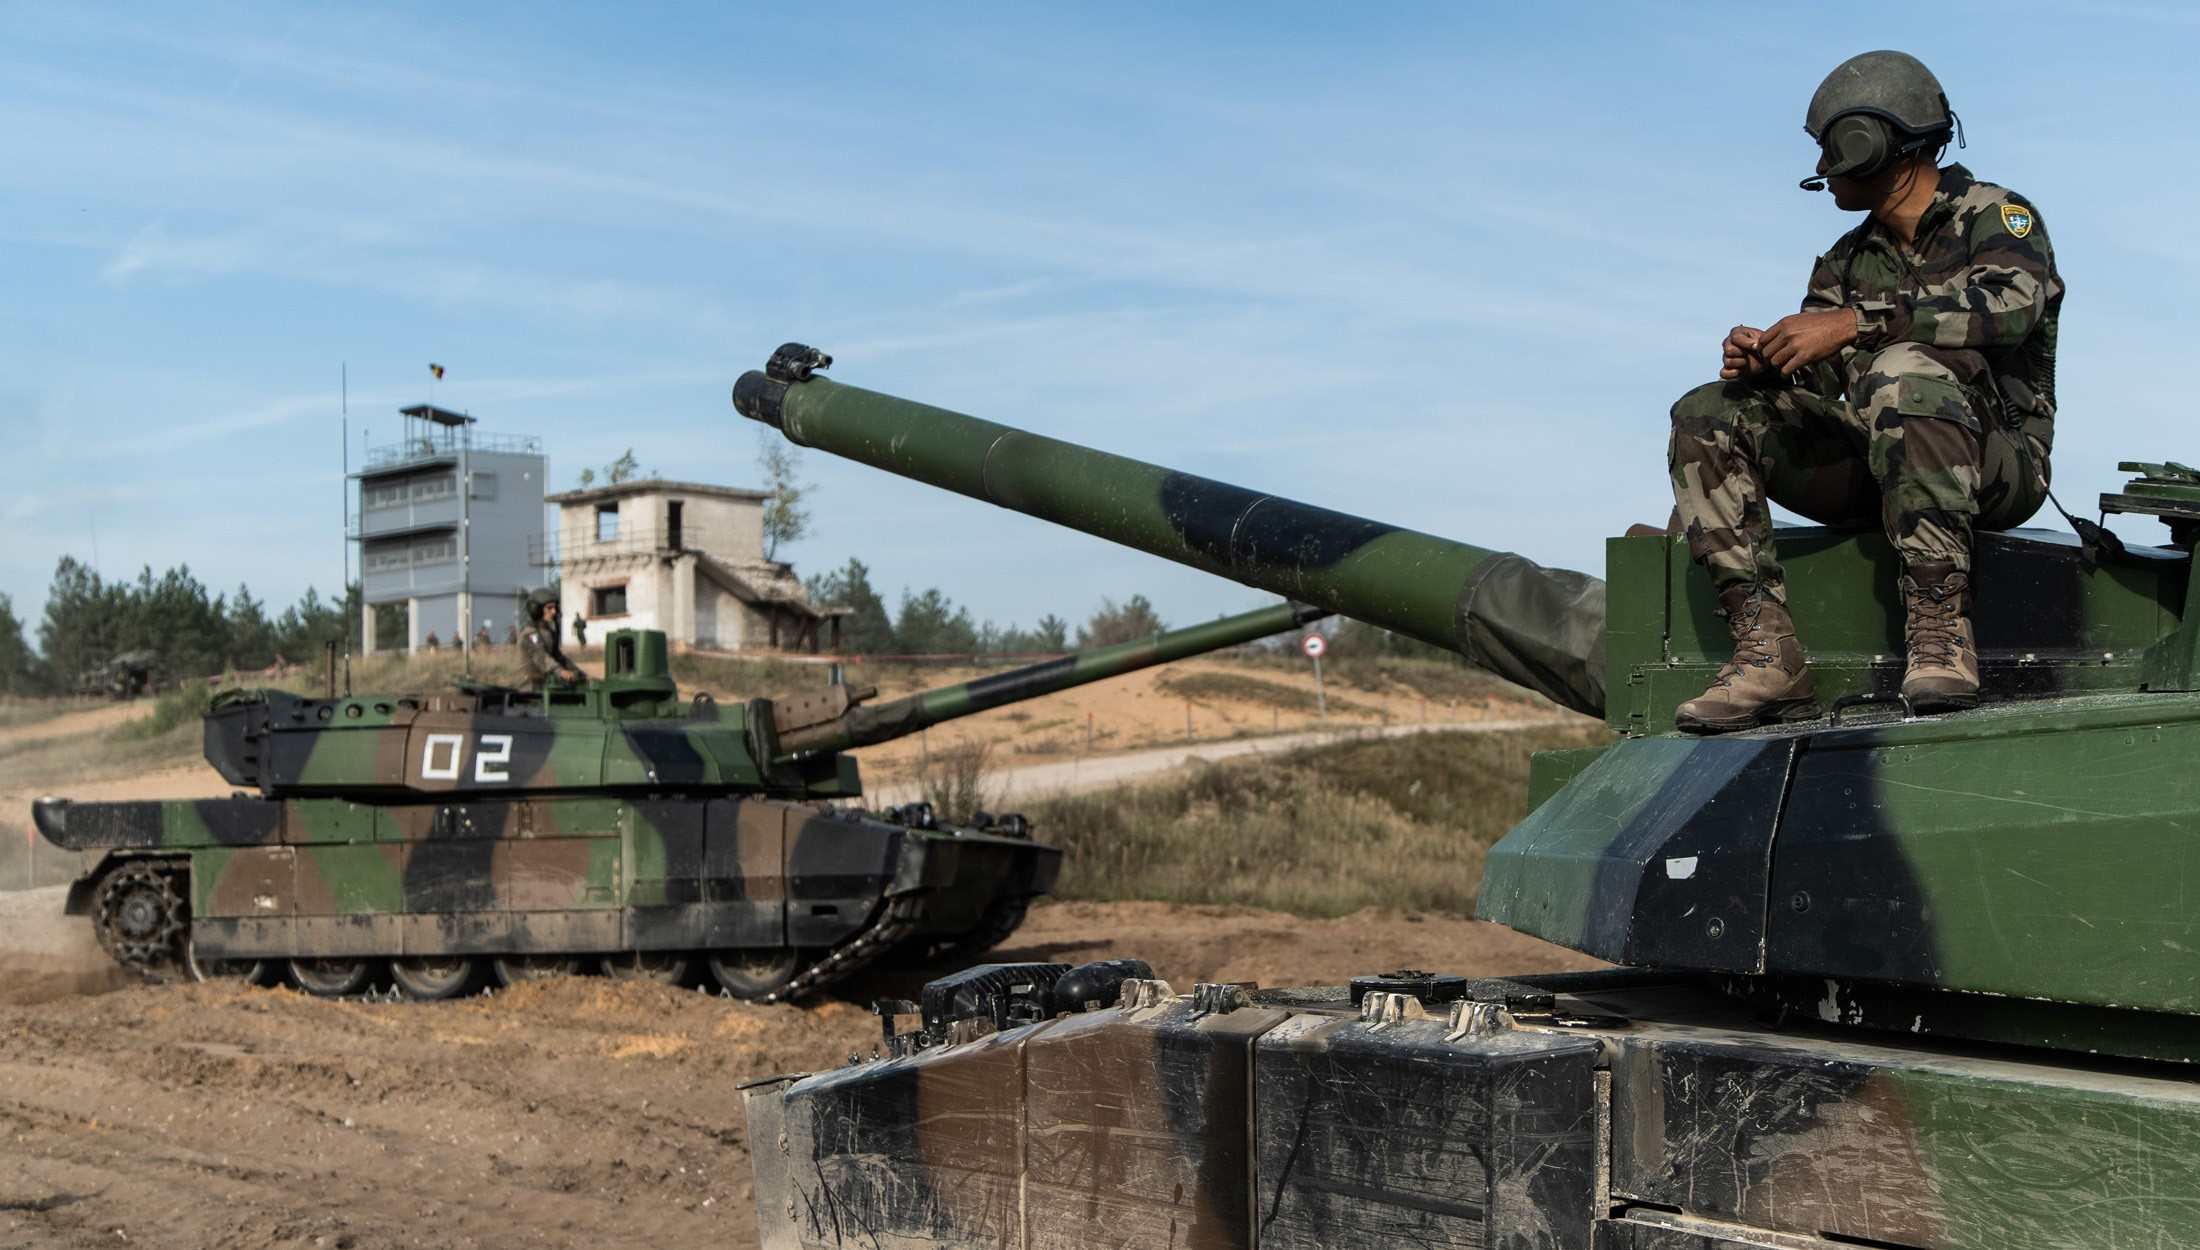 A French Army tank crewman watches a Leclerc battle tank move through the staging area in Ādaži, Latvia during Exercise Furious Hawk. The French tanks are deployed to NATO's enhanced Forward Presence Battlegroup in Estonia.